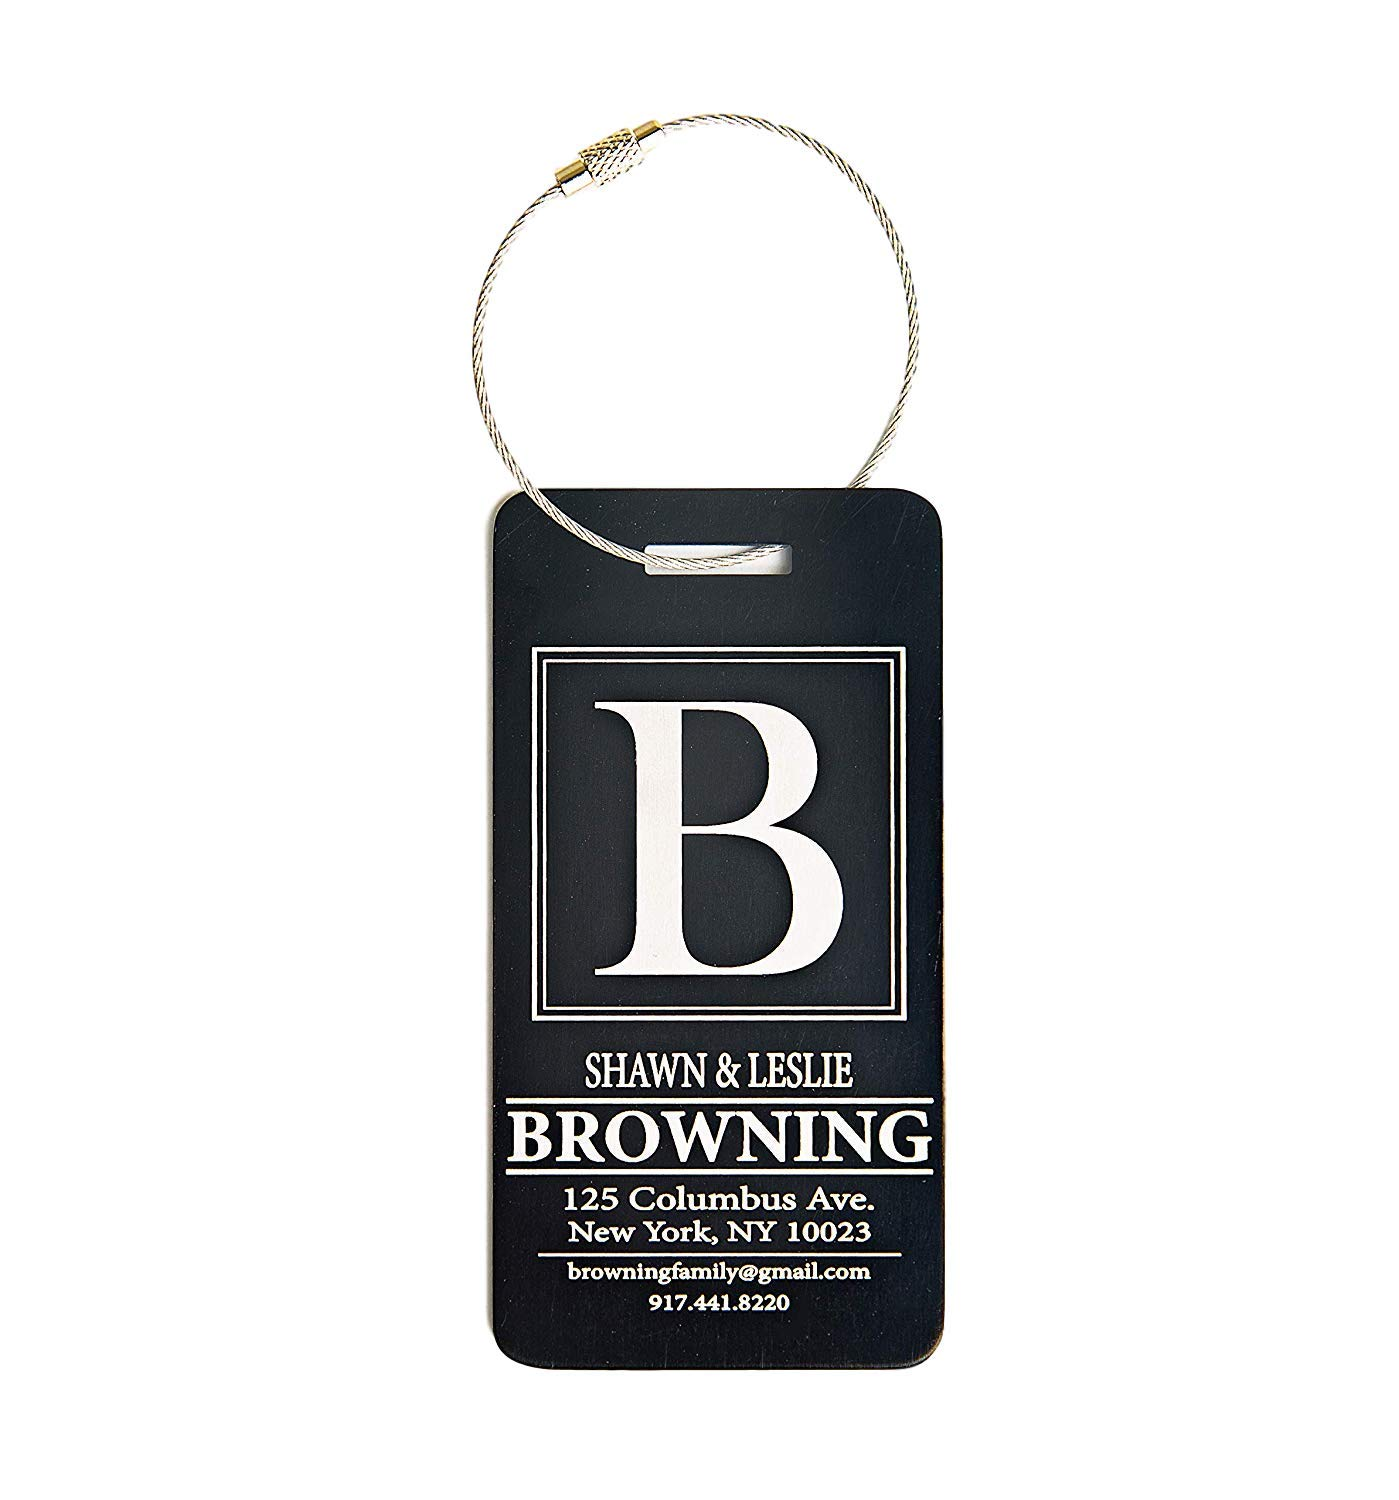 Personalized Luggage Tags Gifts with Engraved Design (Browning Design) - Elegant and Durable Travel Suitcase Name Tags, Gift for Travelers Men and Women (4 Luggage Tags, Black) by Qualtry